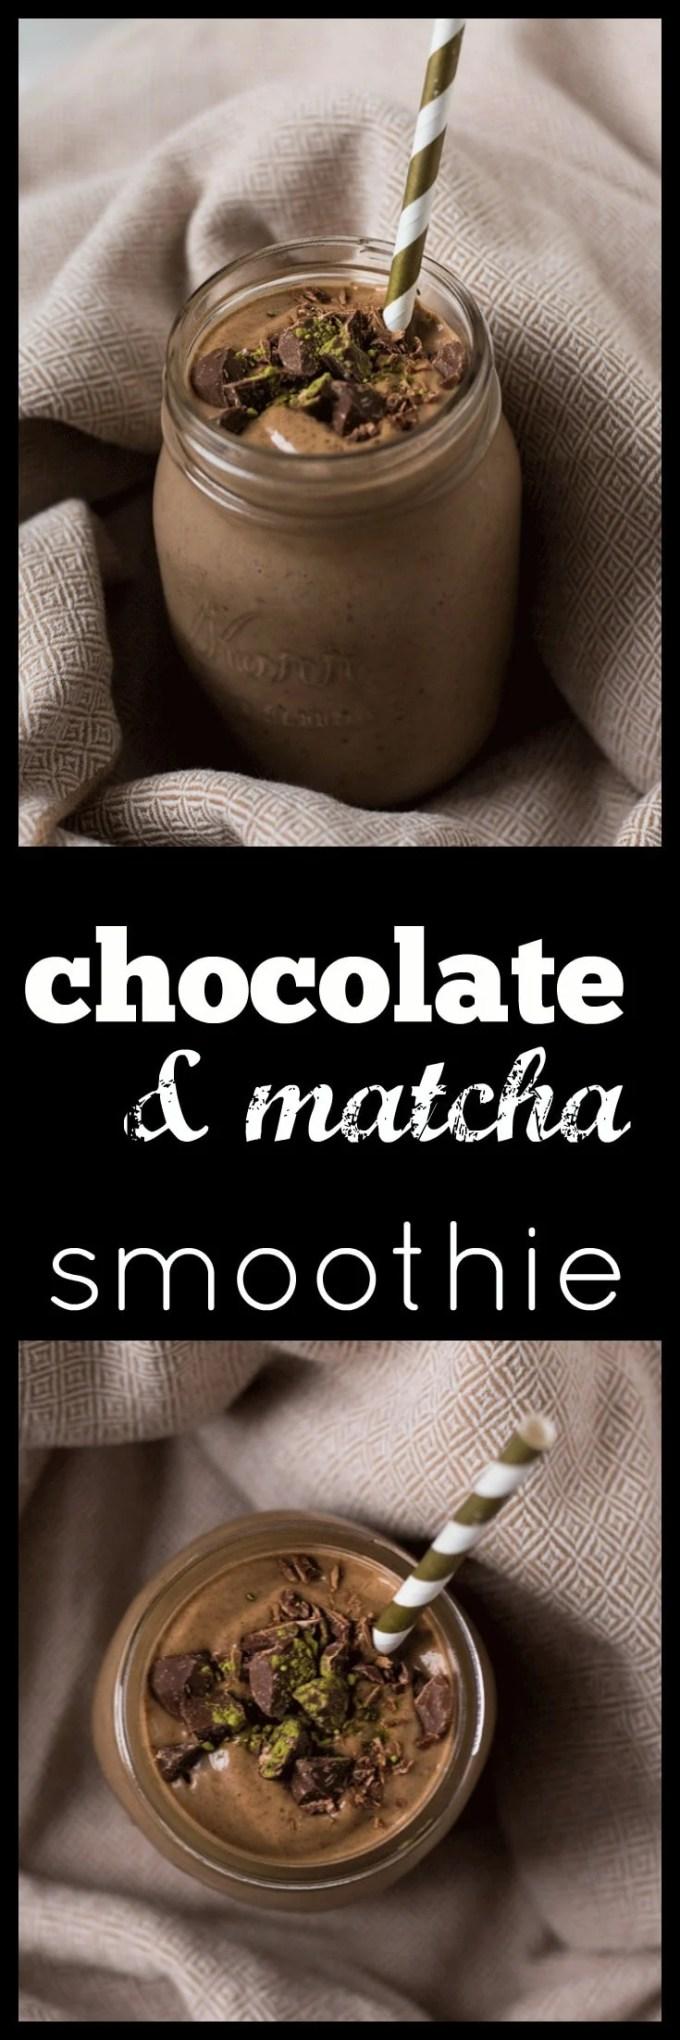 Re-energize with a creamy and decadent Chocolate Matcha Smoothie. Full of good, real food but tastes like dessert. Vegan, refined sugar free